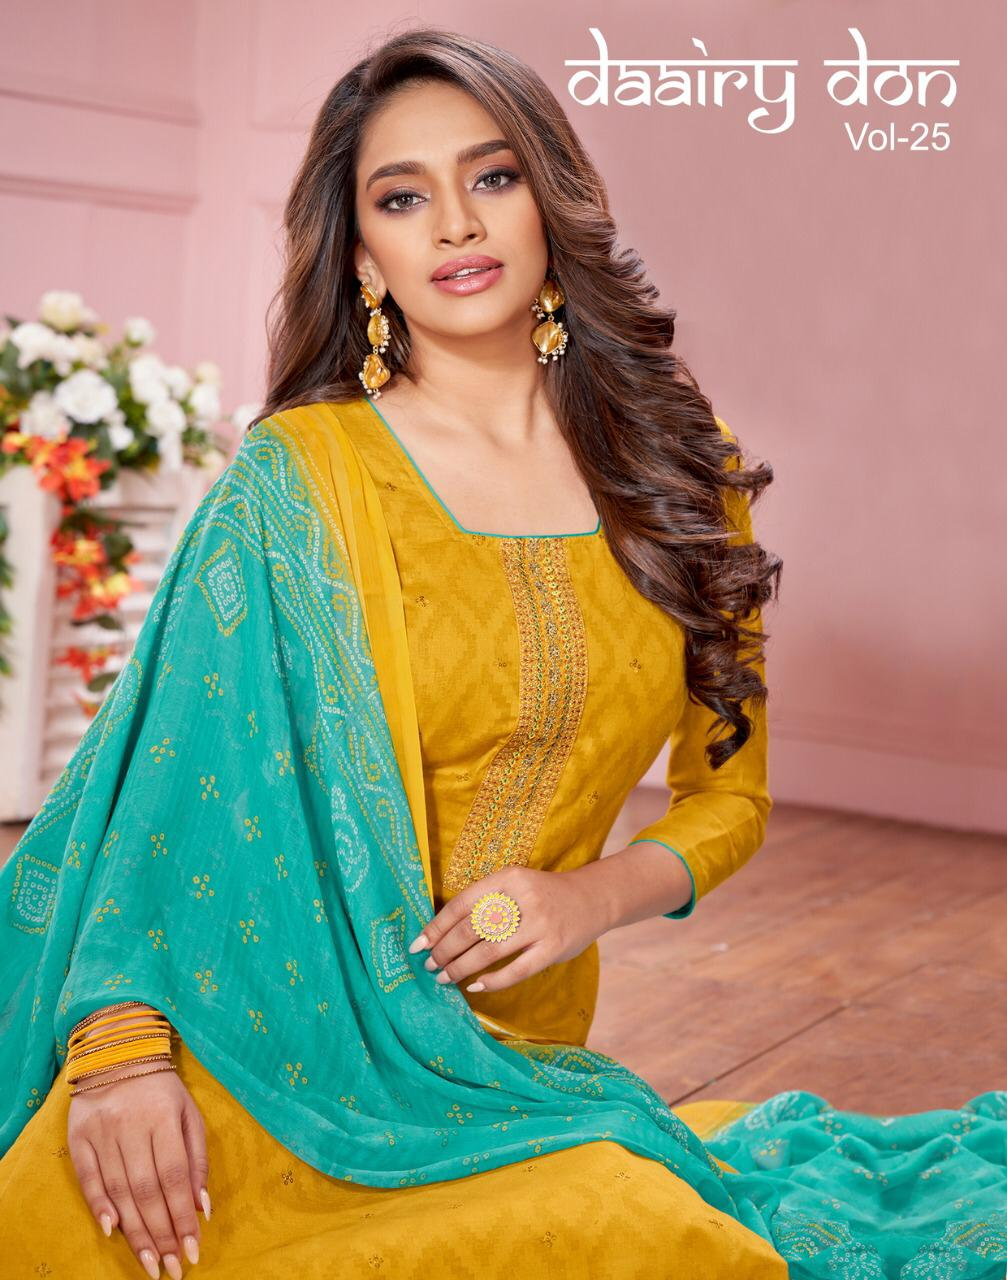 Kapil Trendz Daairy Don Vol 25 Jacquard Work With Fancy Lace Daily Wear Dress Materials